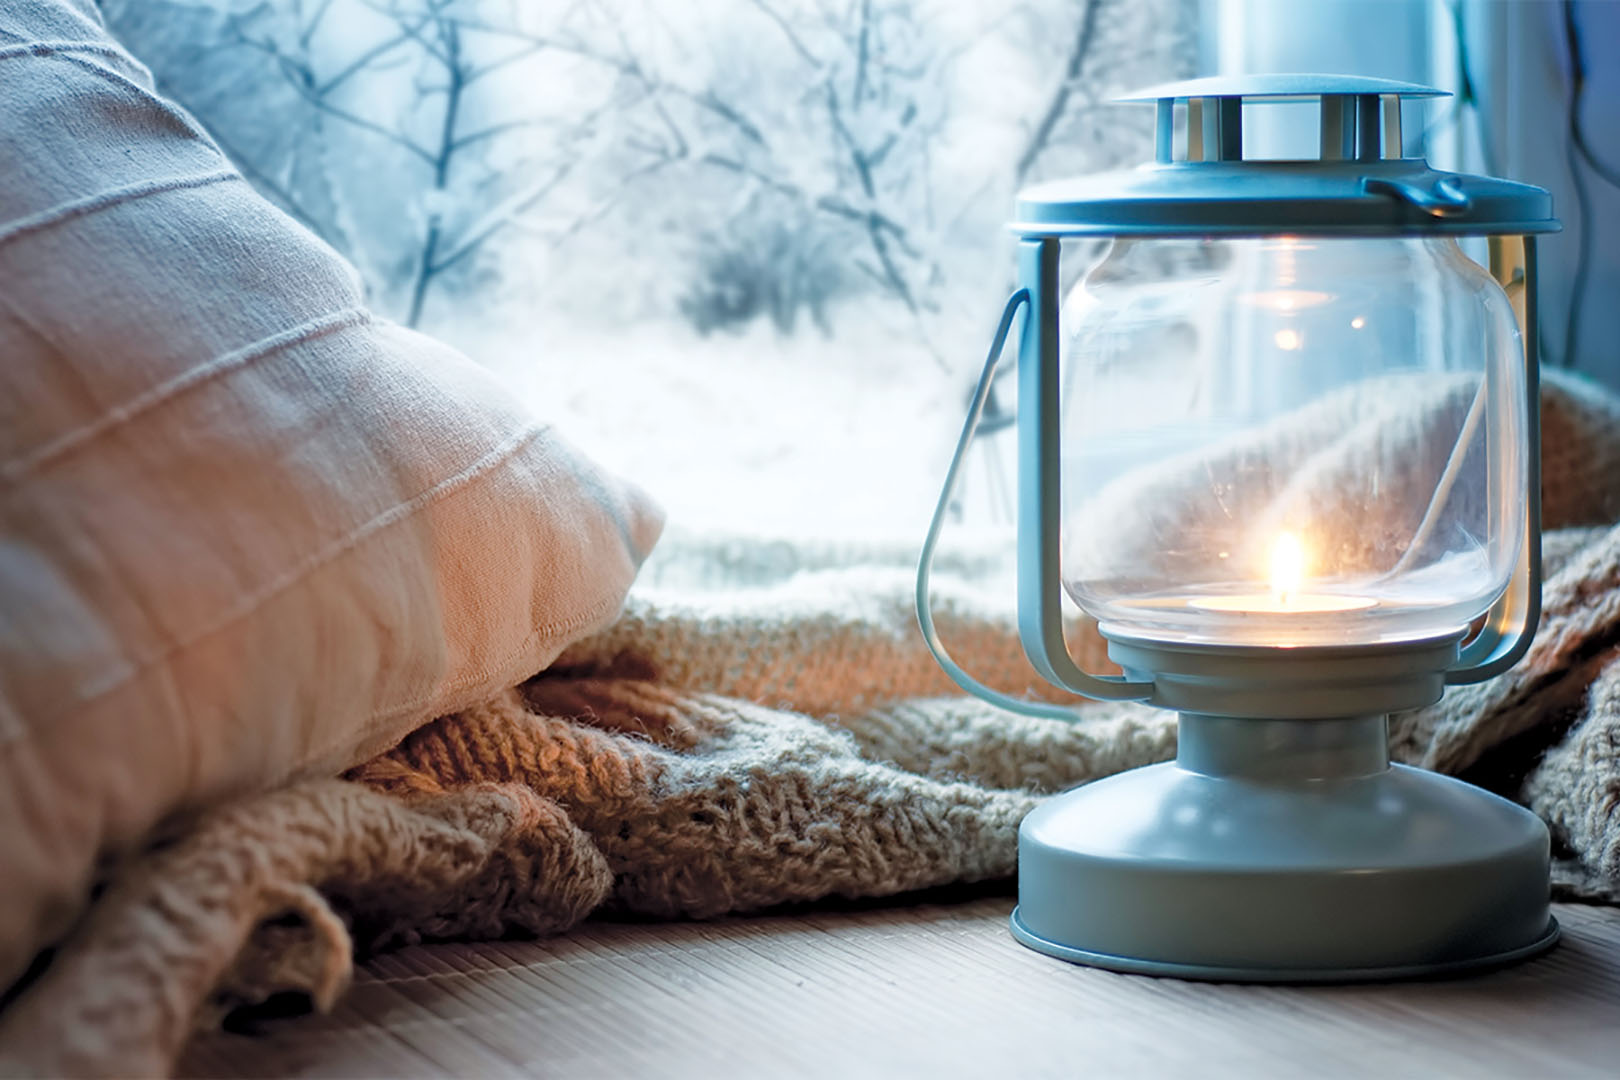 Little Secrets To Keep Our Home Cozy